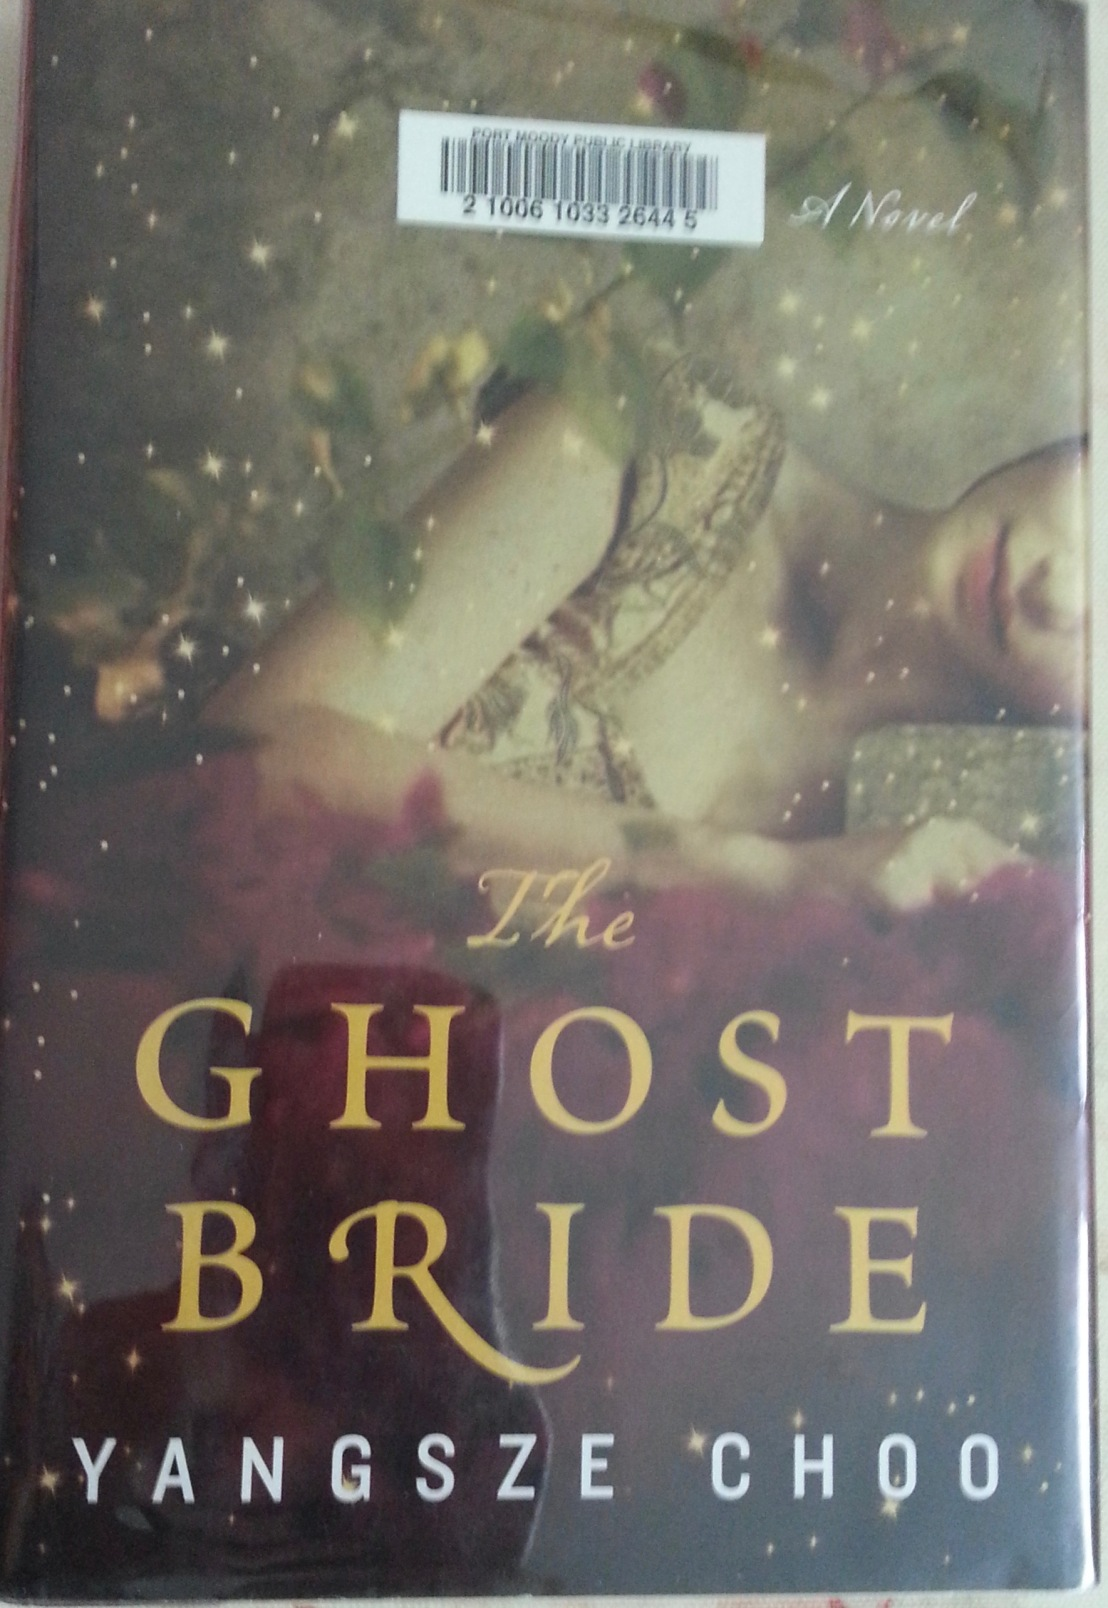 Yangsze Choo's — The Ghost Bride